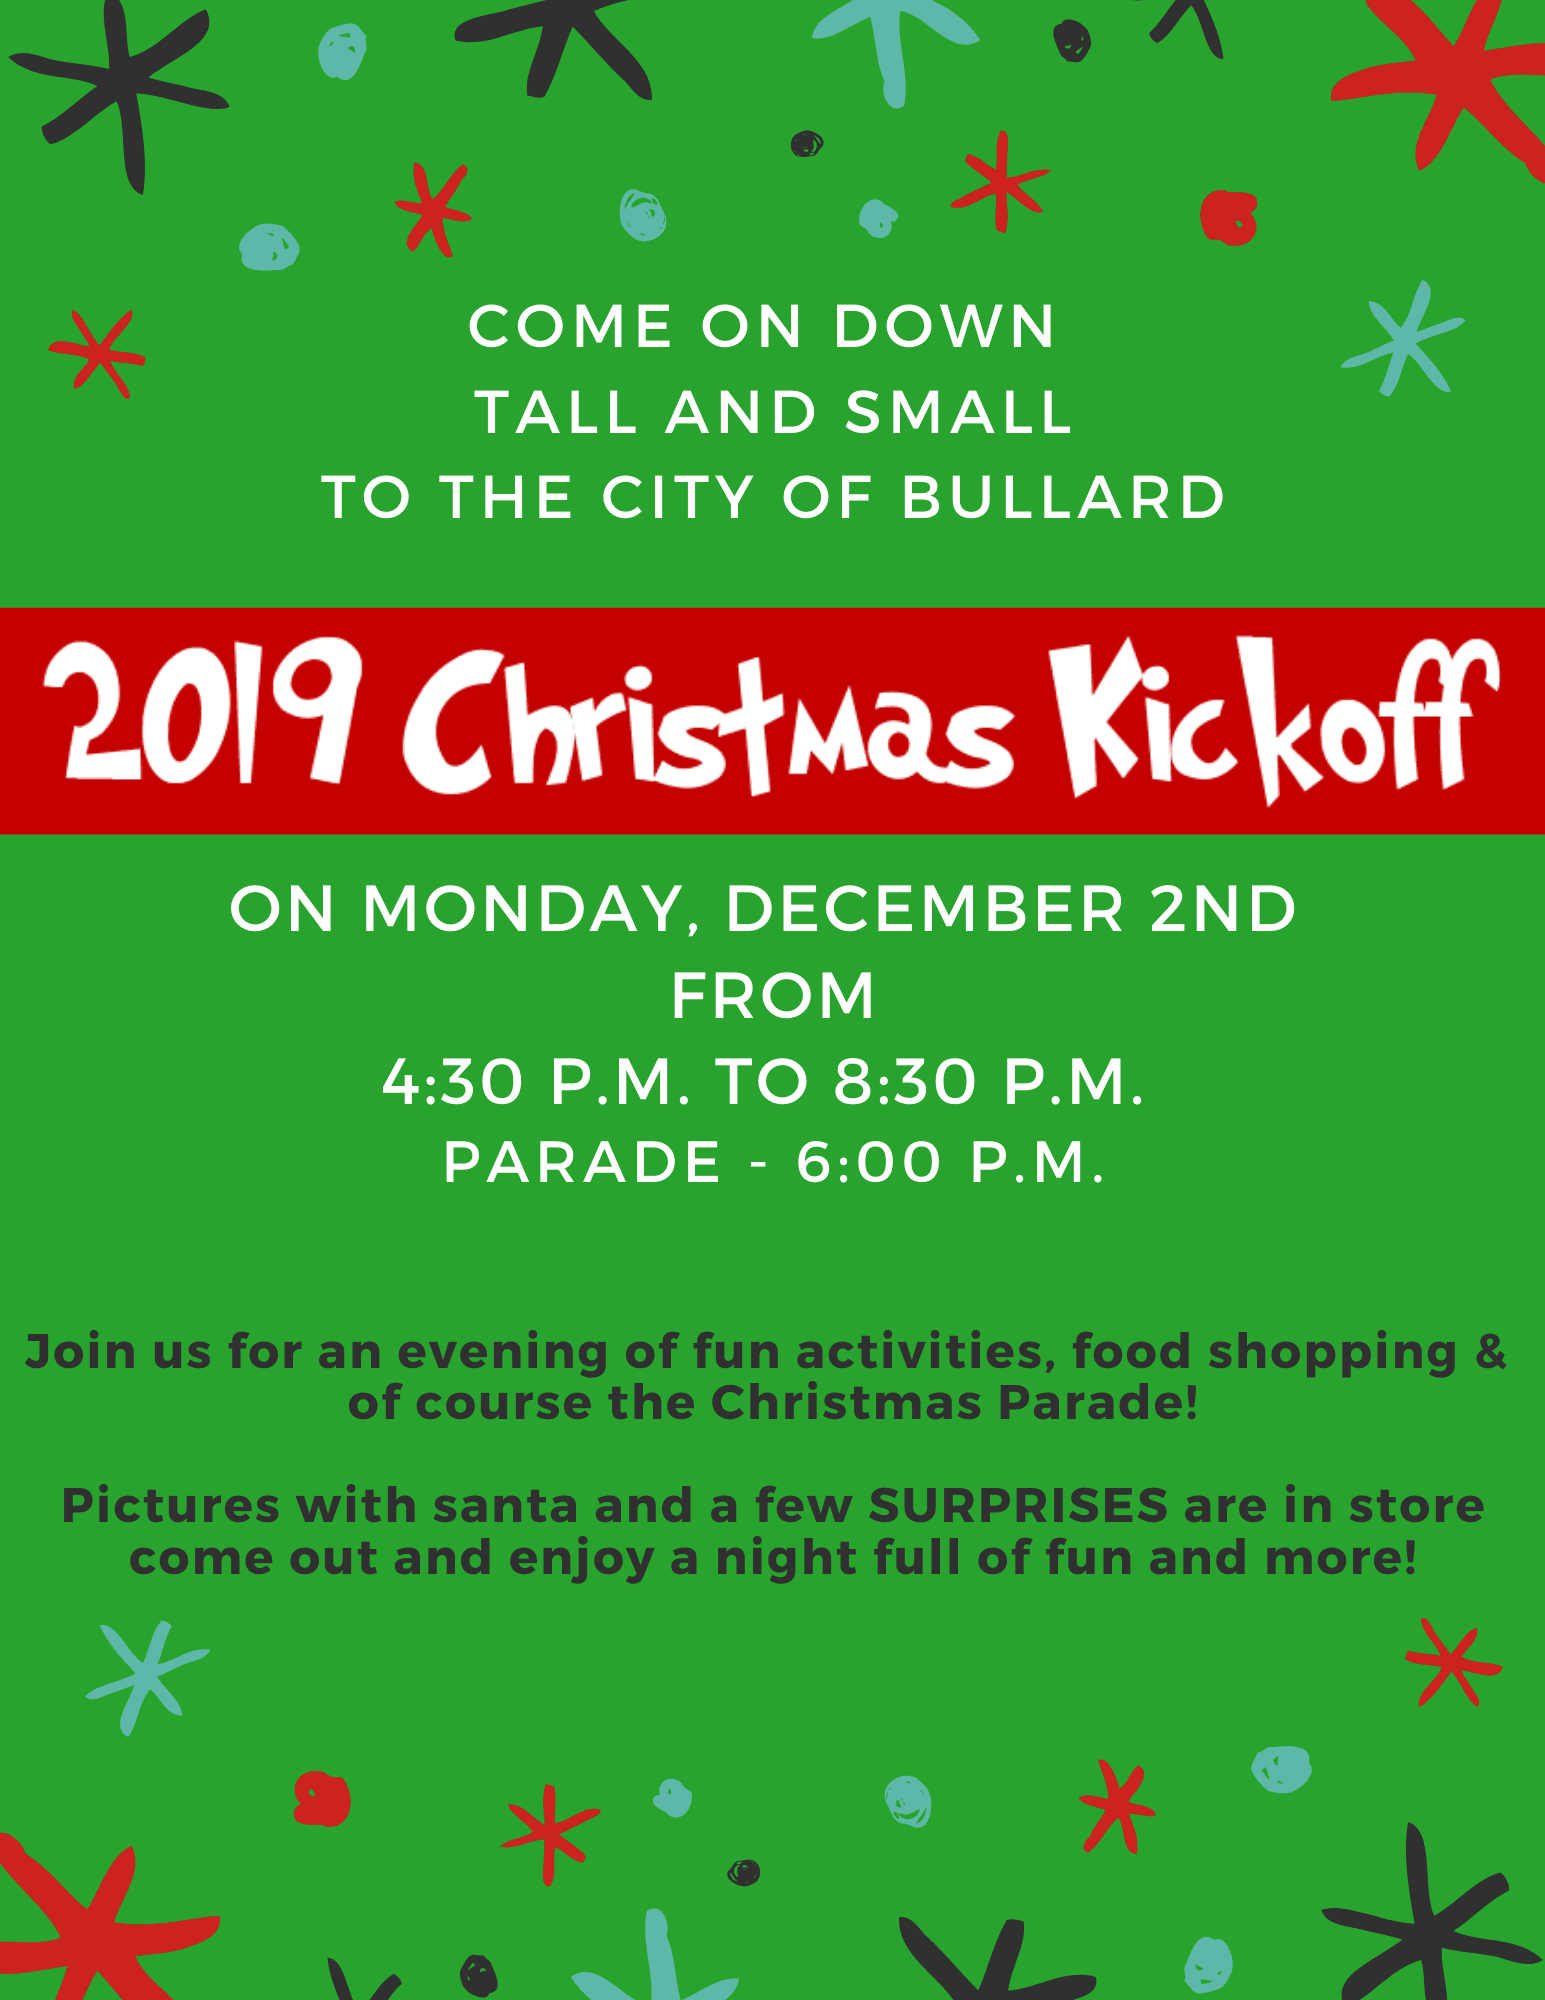 Christmas Kickoff 2019 Flyer Opens in new window